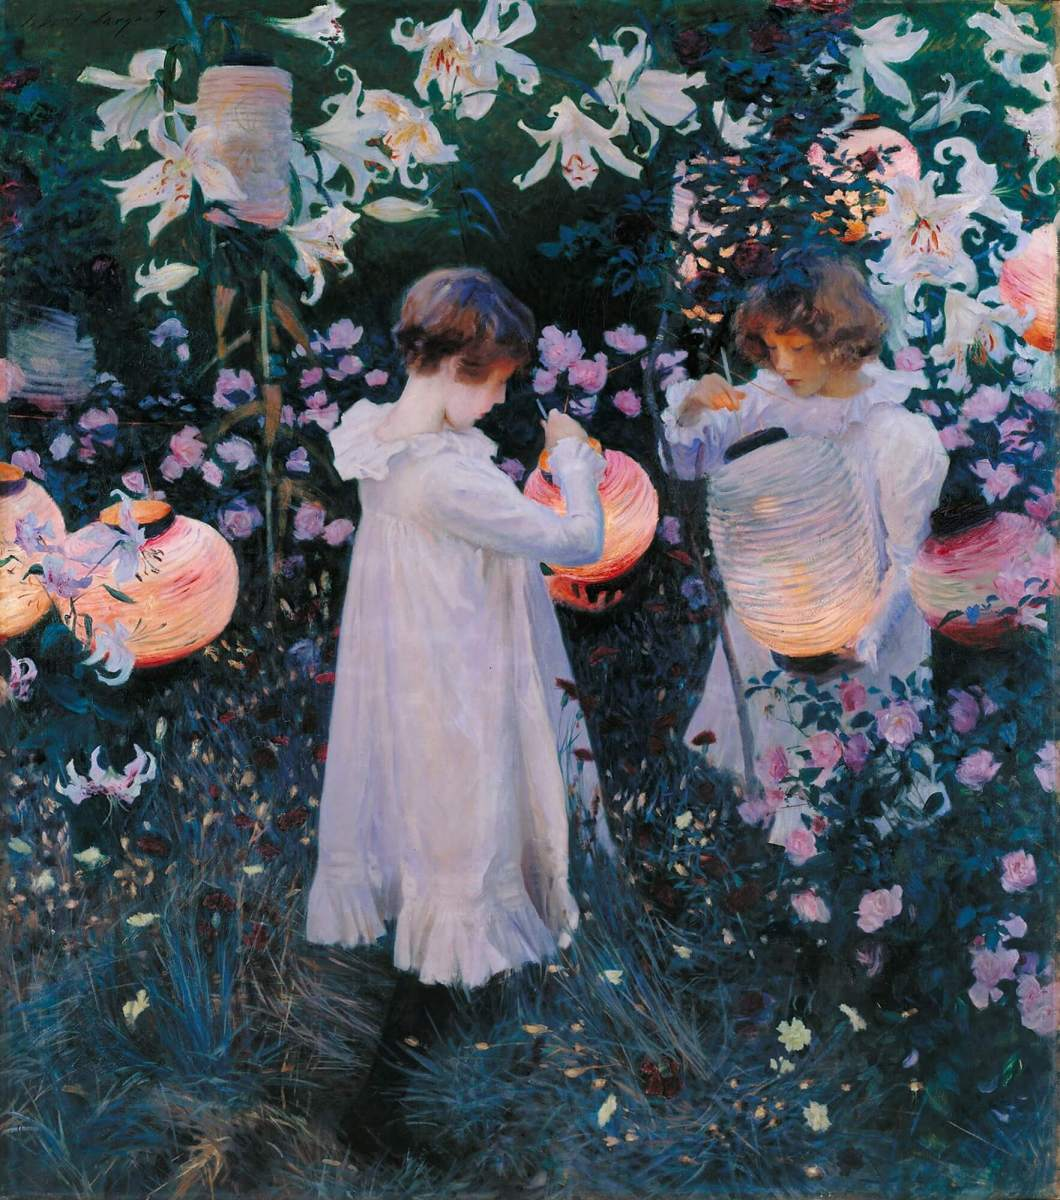 American Art of the Week: Carnation, Lily, Lily, Rose by John Singer Sargent